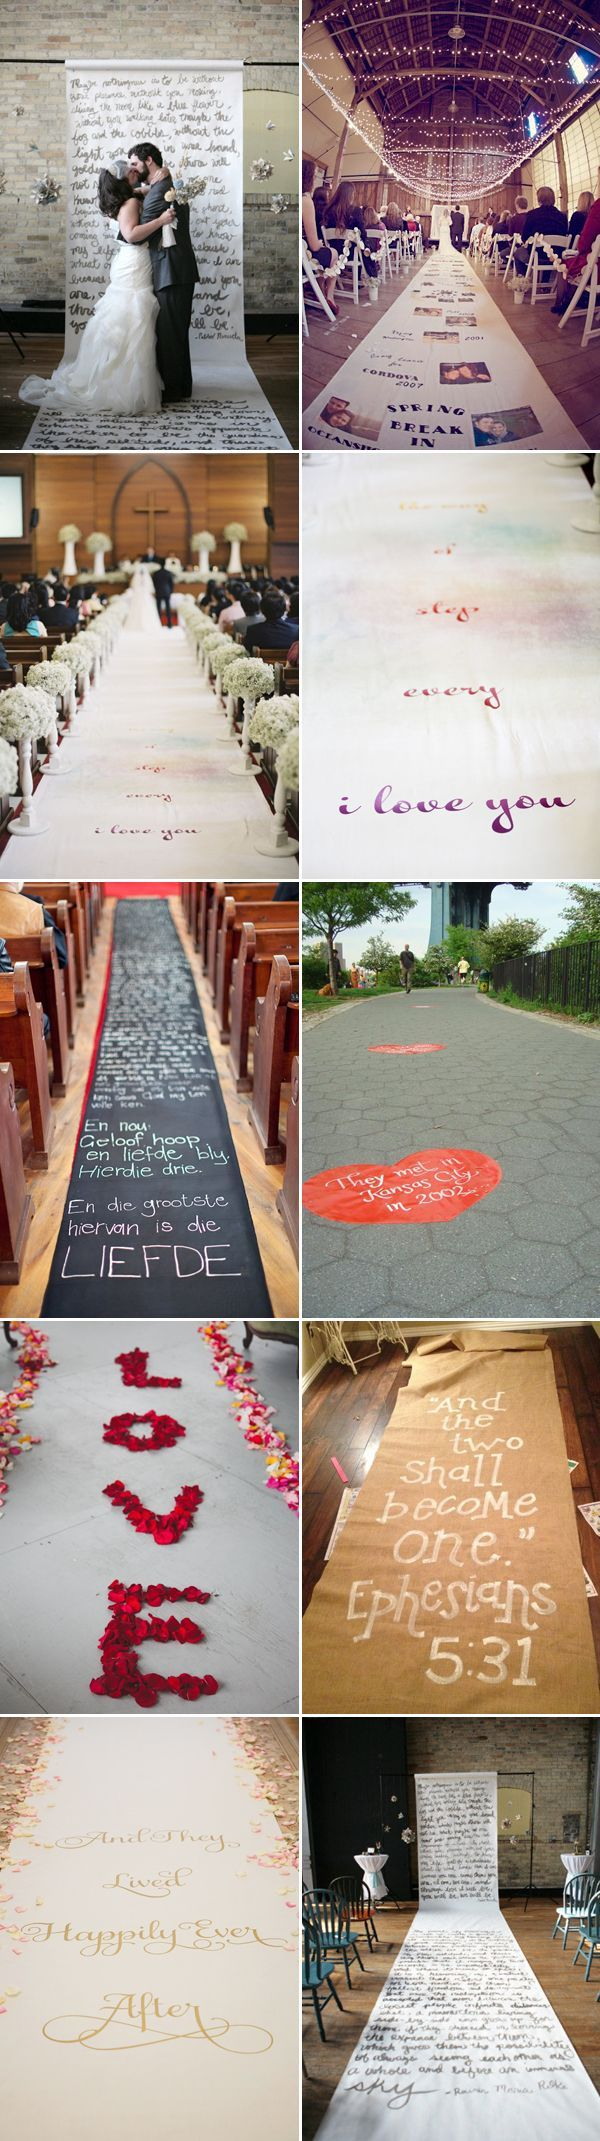 25 Wedding Aisle Runner Ideas for Your Big Day   http://www.deerpearlflowers.com/wedding-aisle-runner-ideas-for-your-big-day/